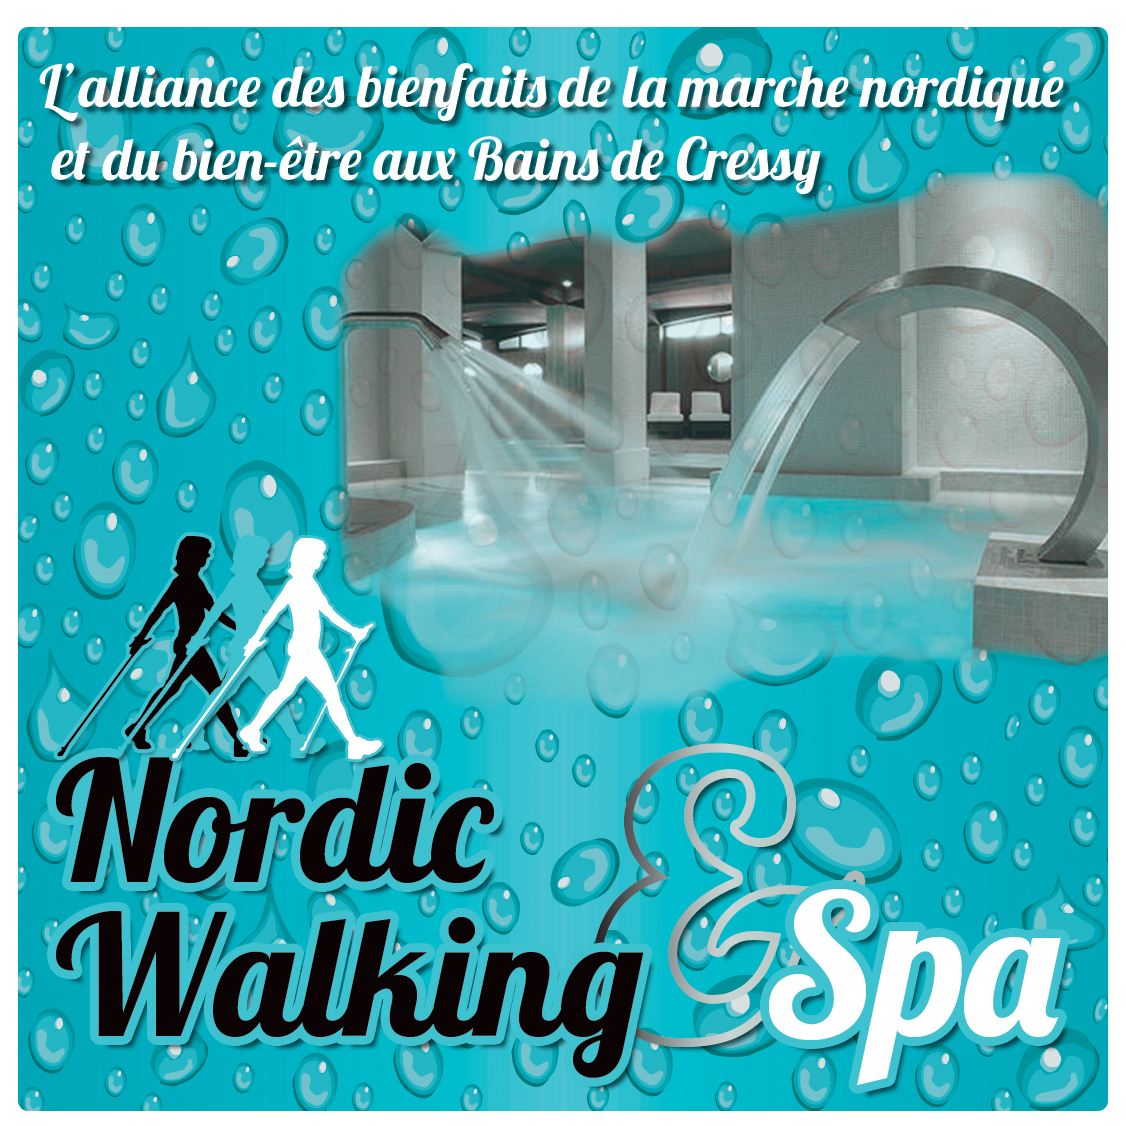 Nordic walking spa nordic 39 nature - Marche nordique salon ...